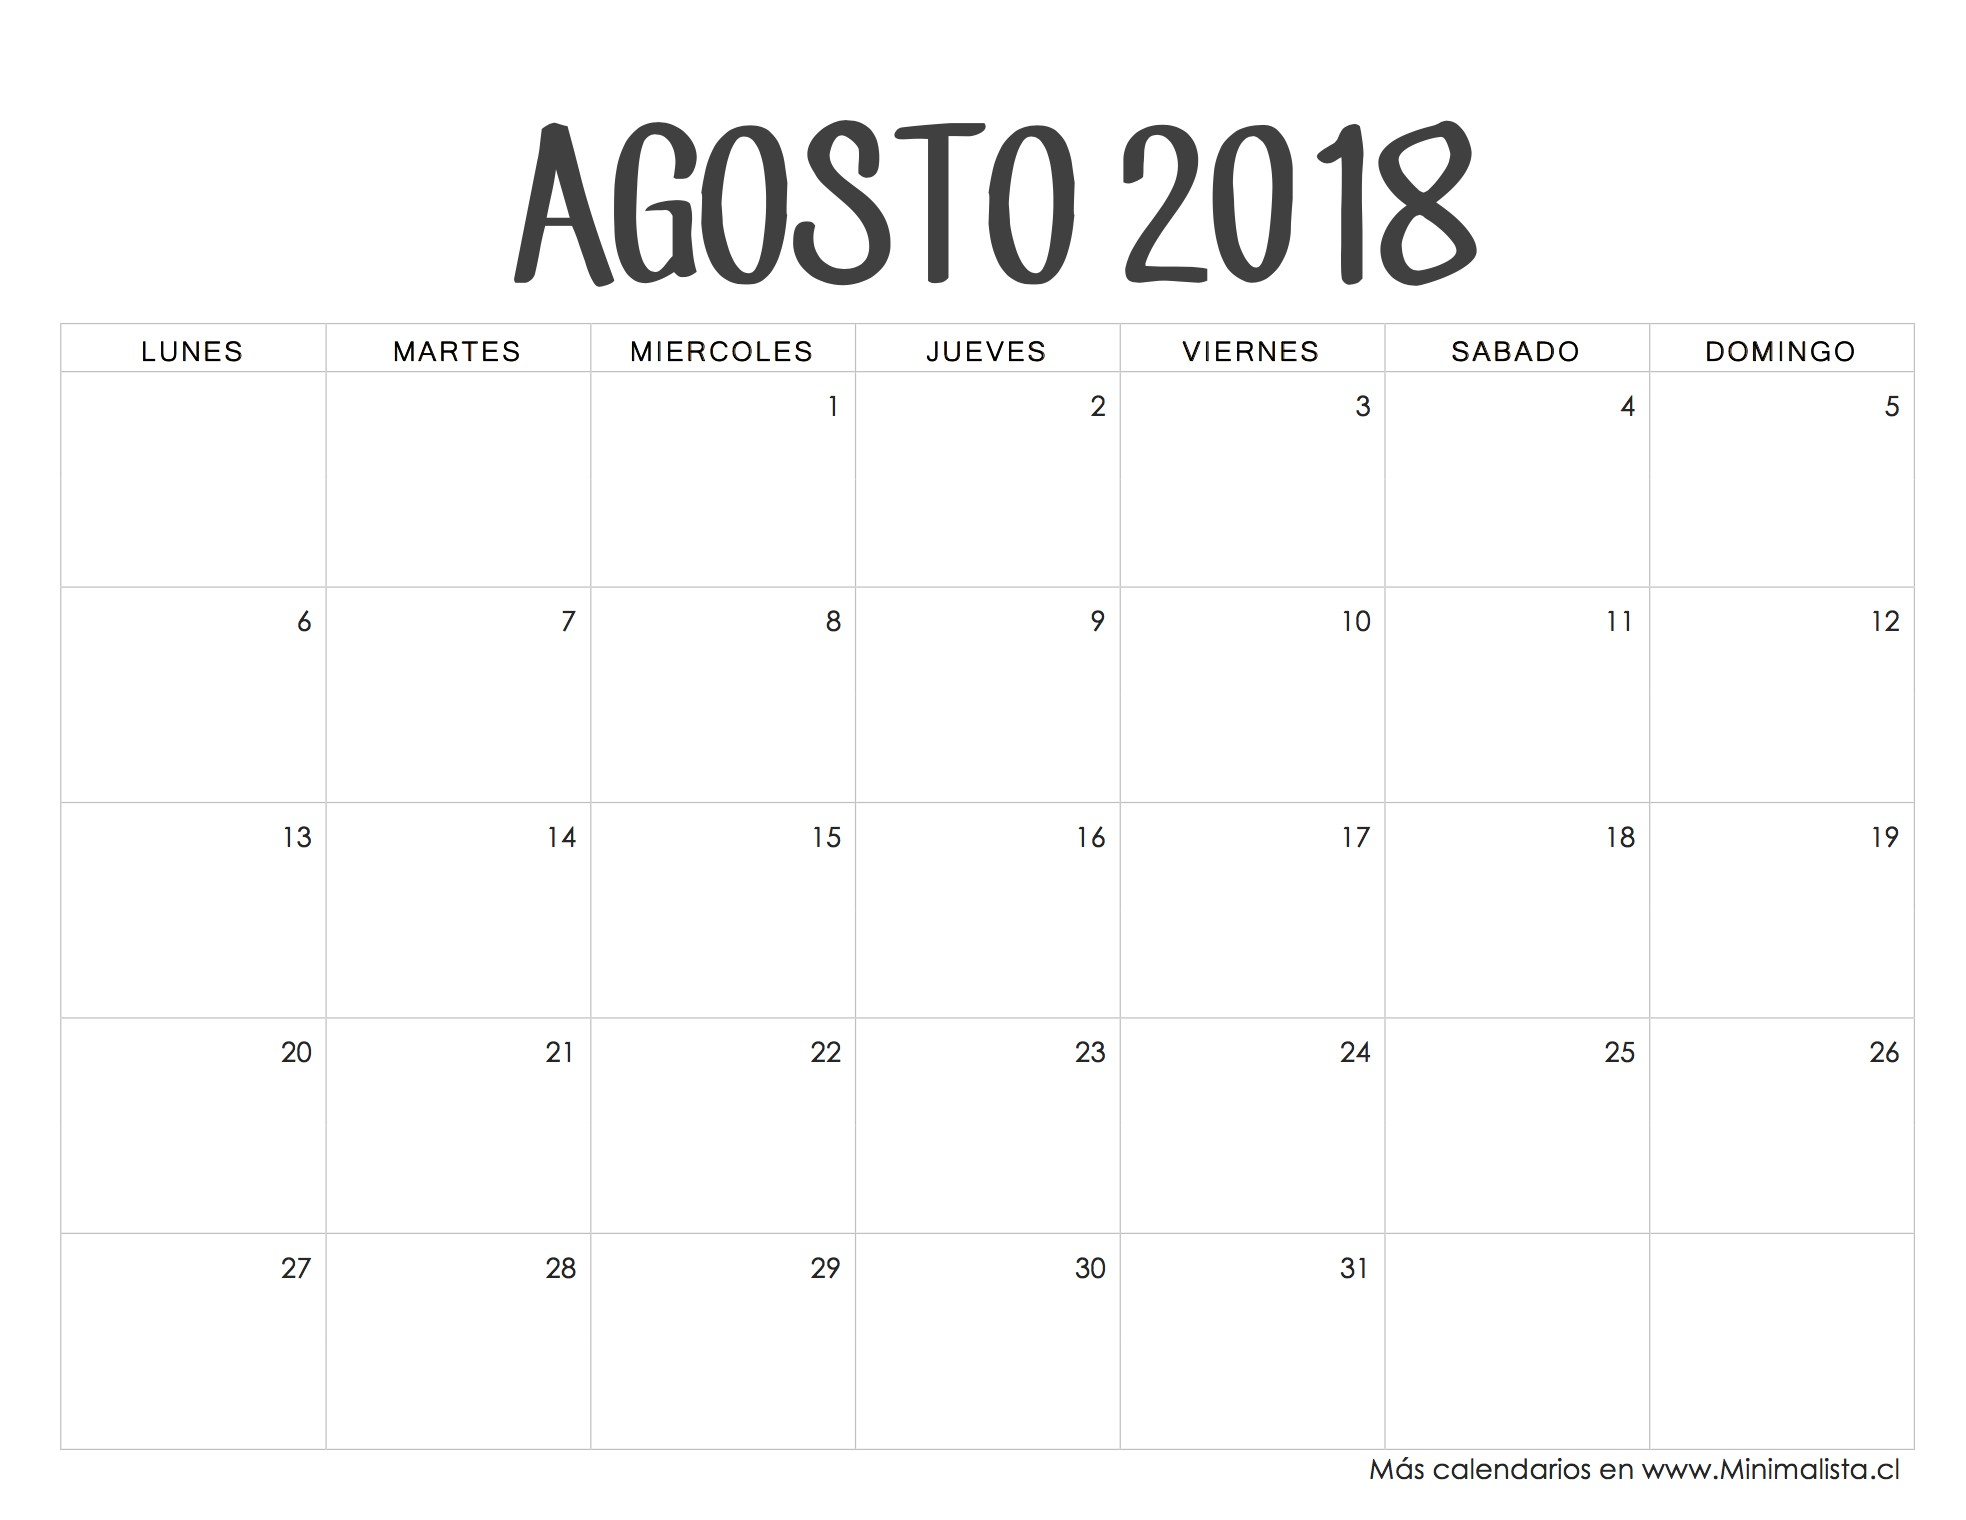 Calendario Argentina 2019 Para Imprimir Más Populares Calendario Agosto 2018 Calendario 2017 Pinterest Of Calendario Argentina 2019 Para Imprimir Más Caliente Calendario Junio Related Keywords & Suggestions Calendario Junio